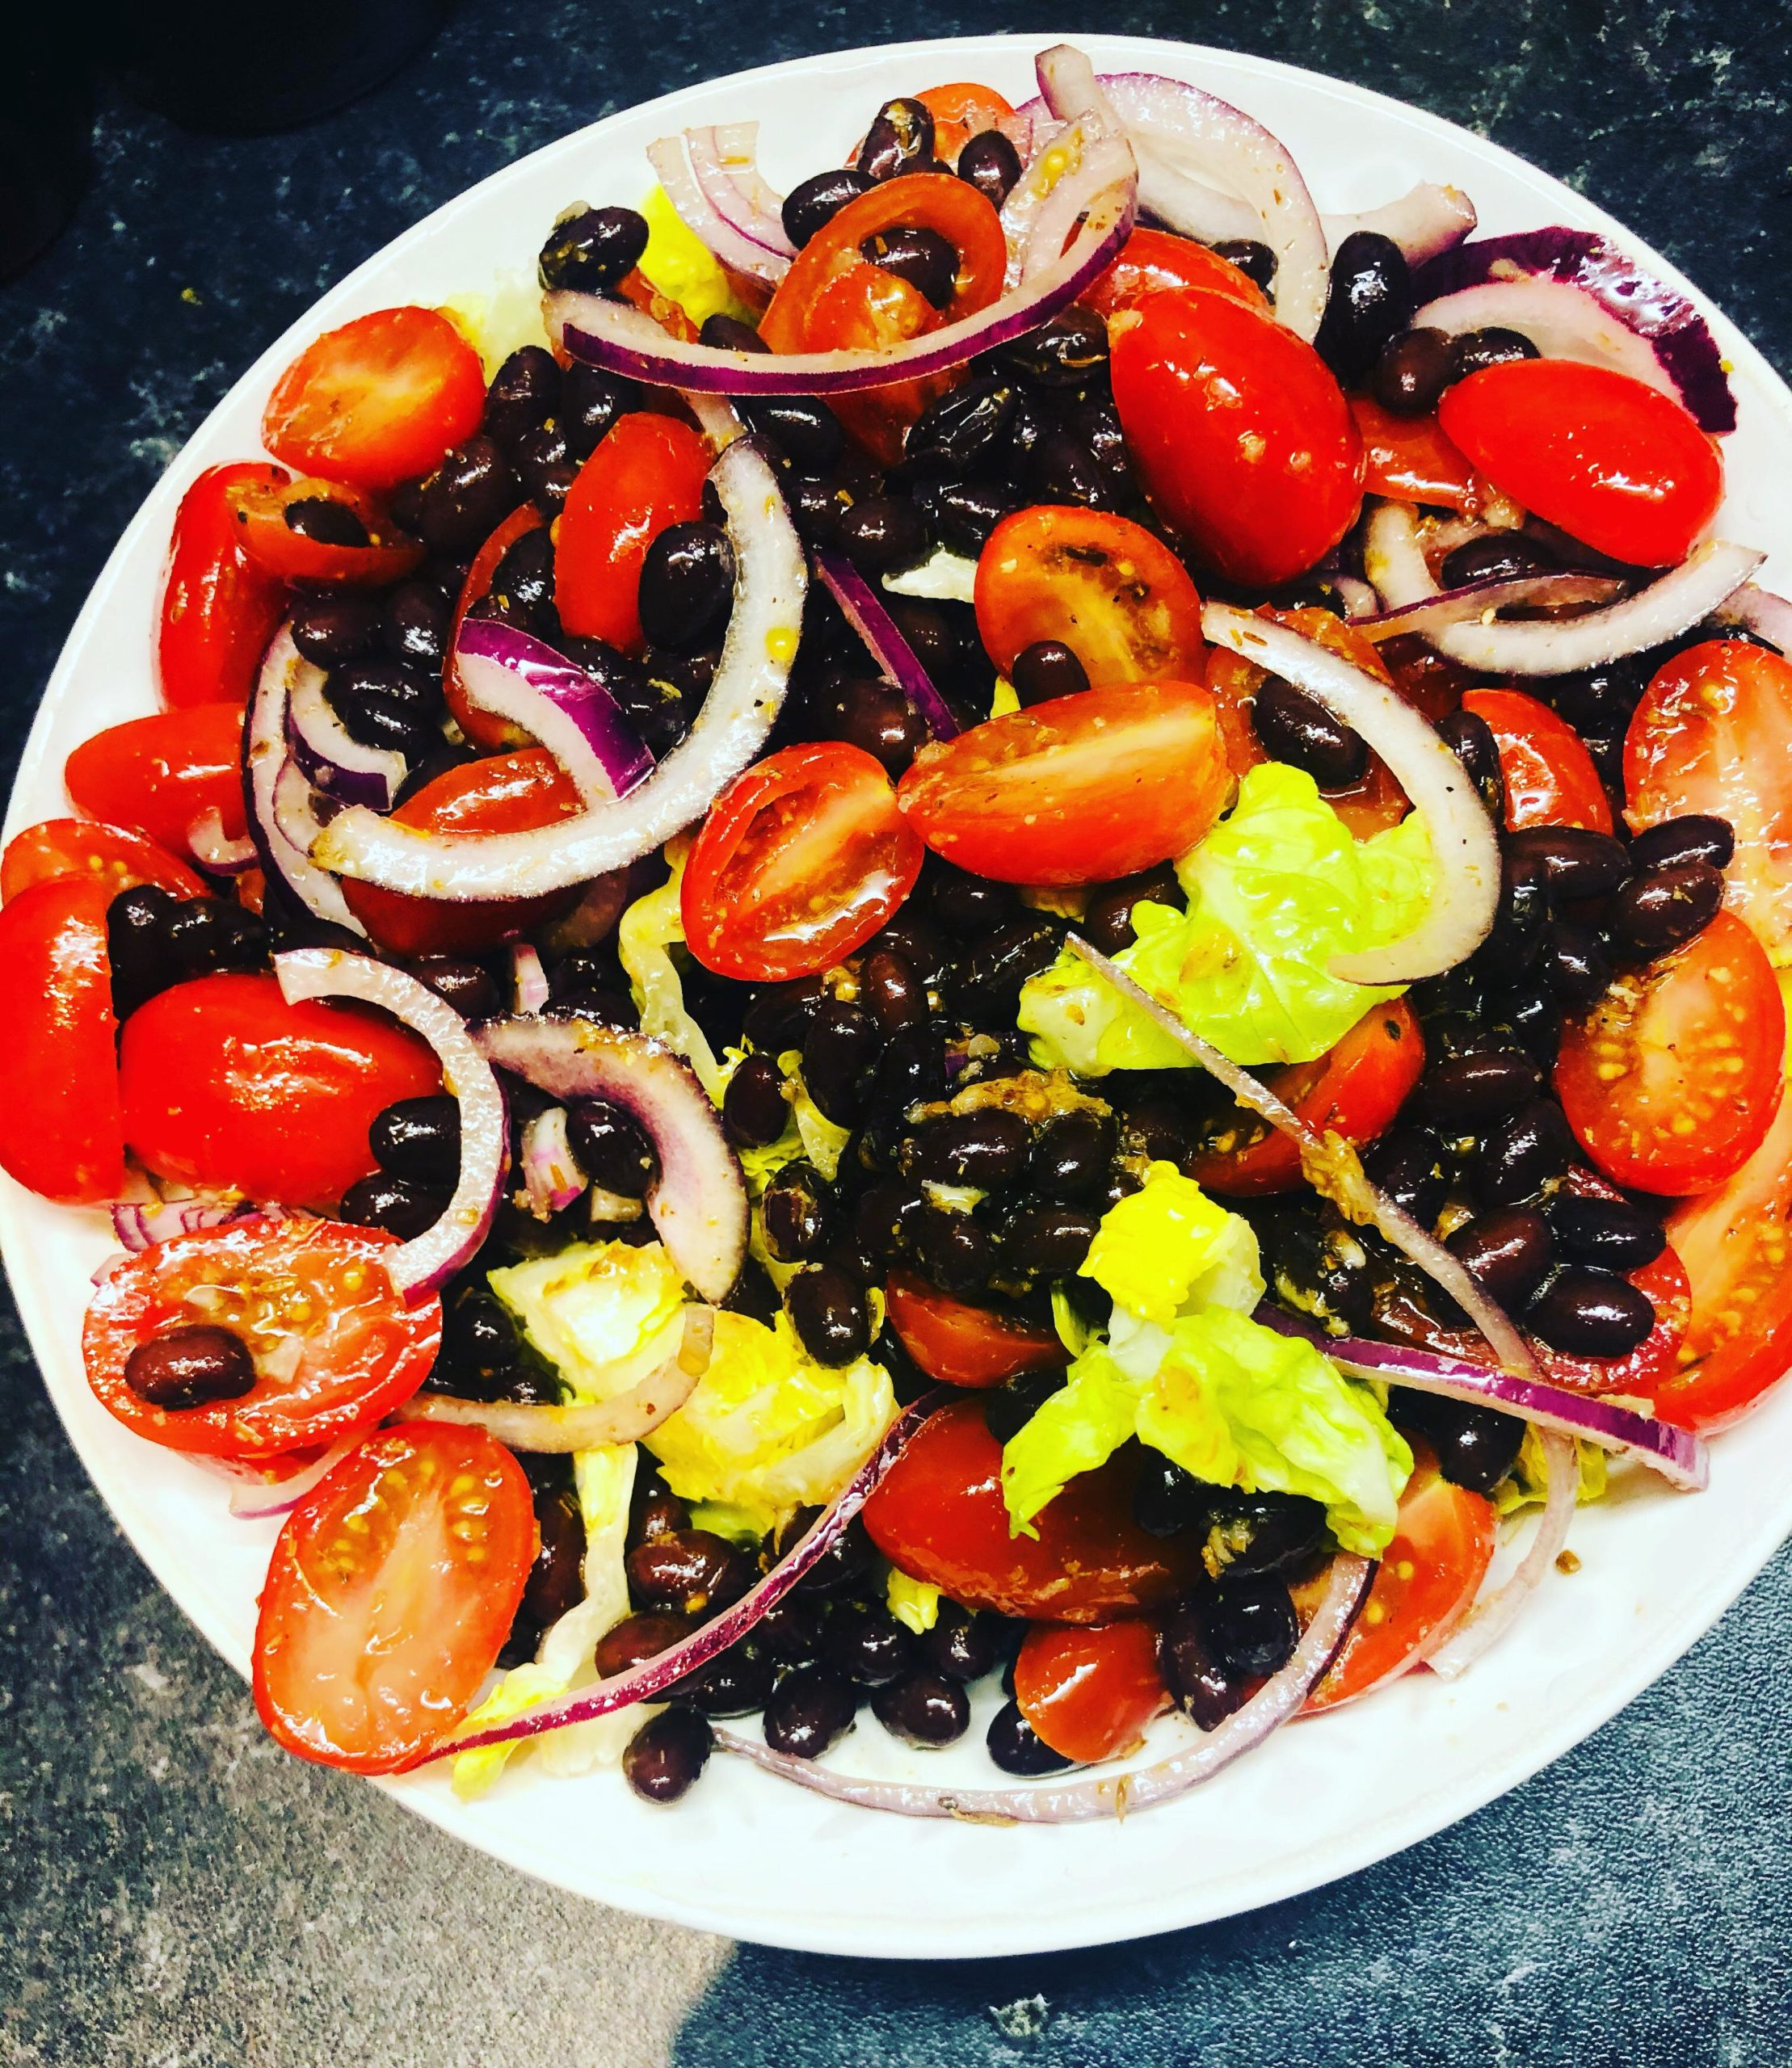 Tomato Black Bean Salad With Cumin Dressing